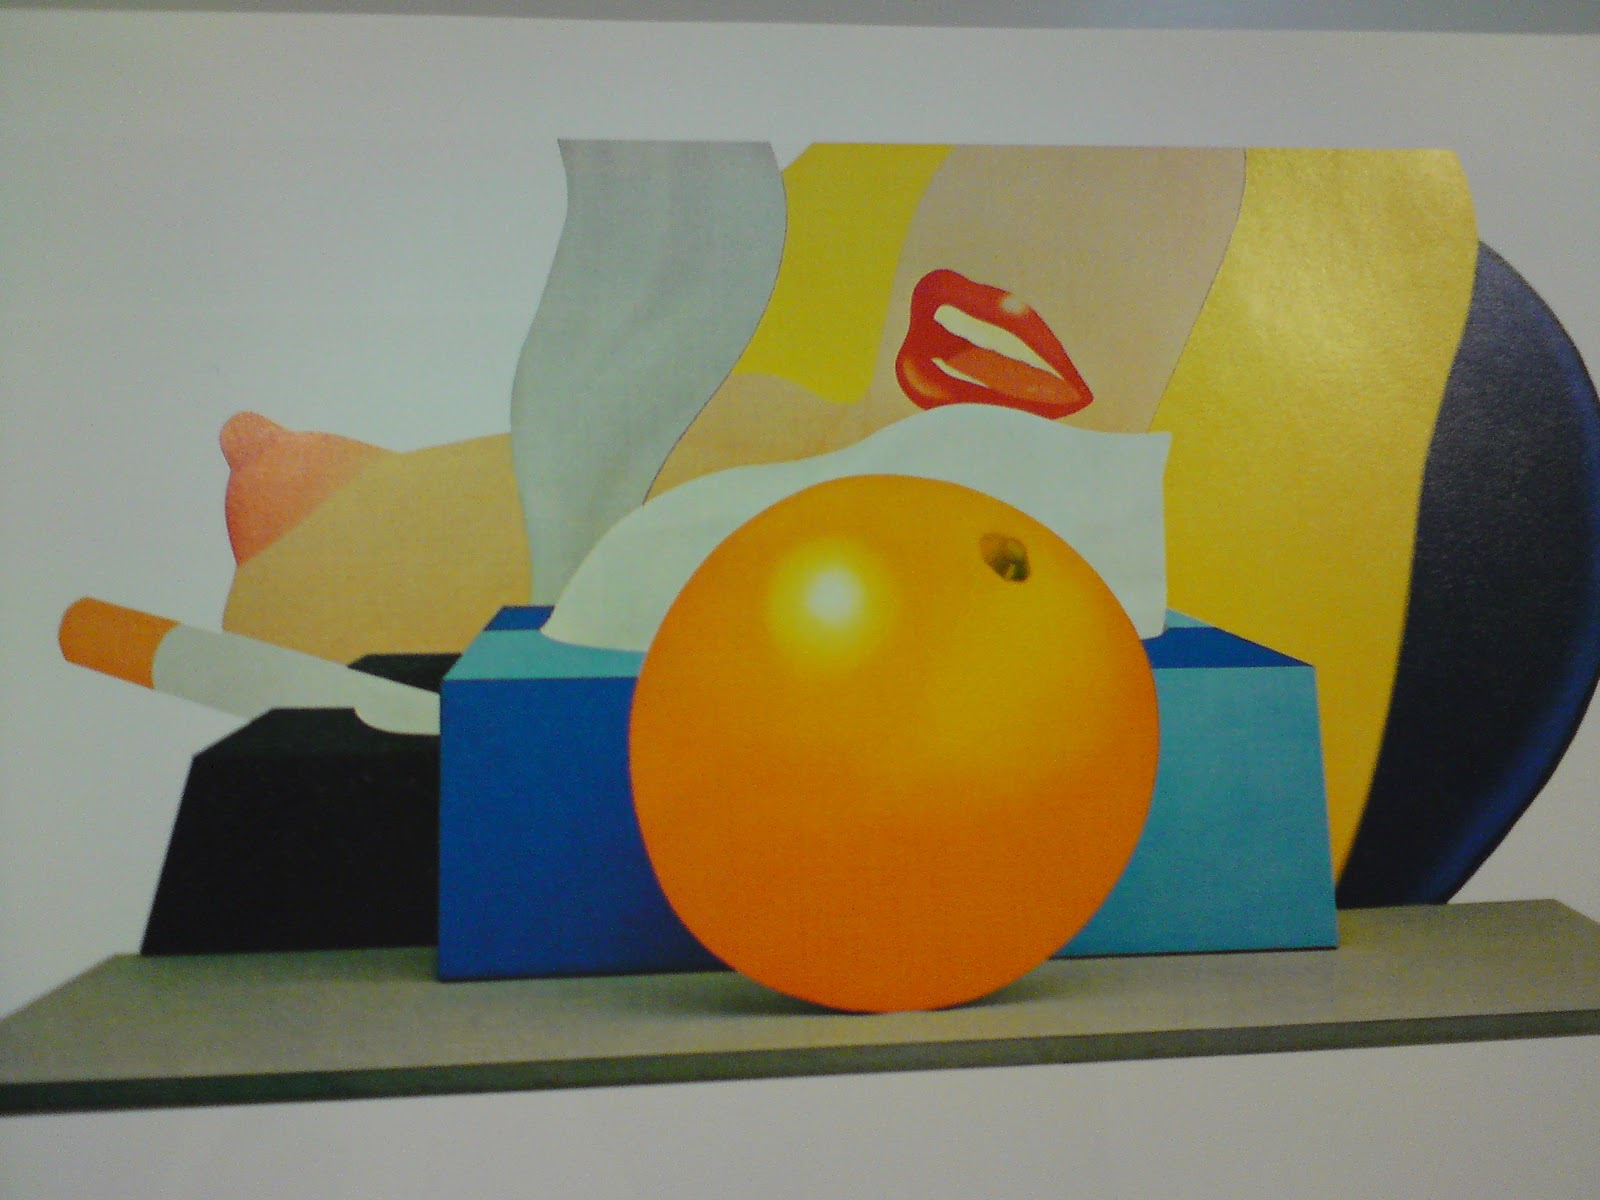 "Tom Wesselmann,""Great American Nude No. 98"" (1967)"